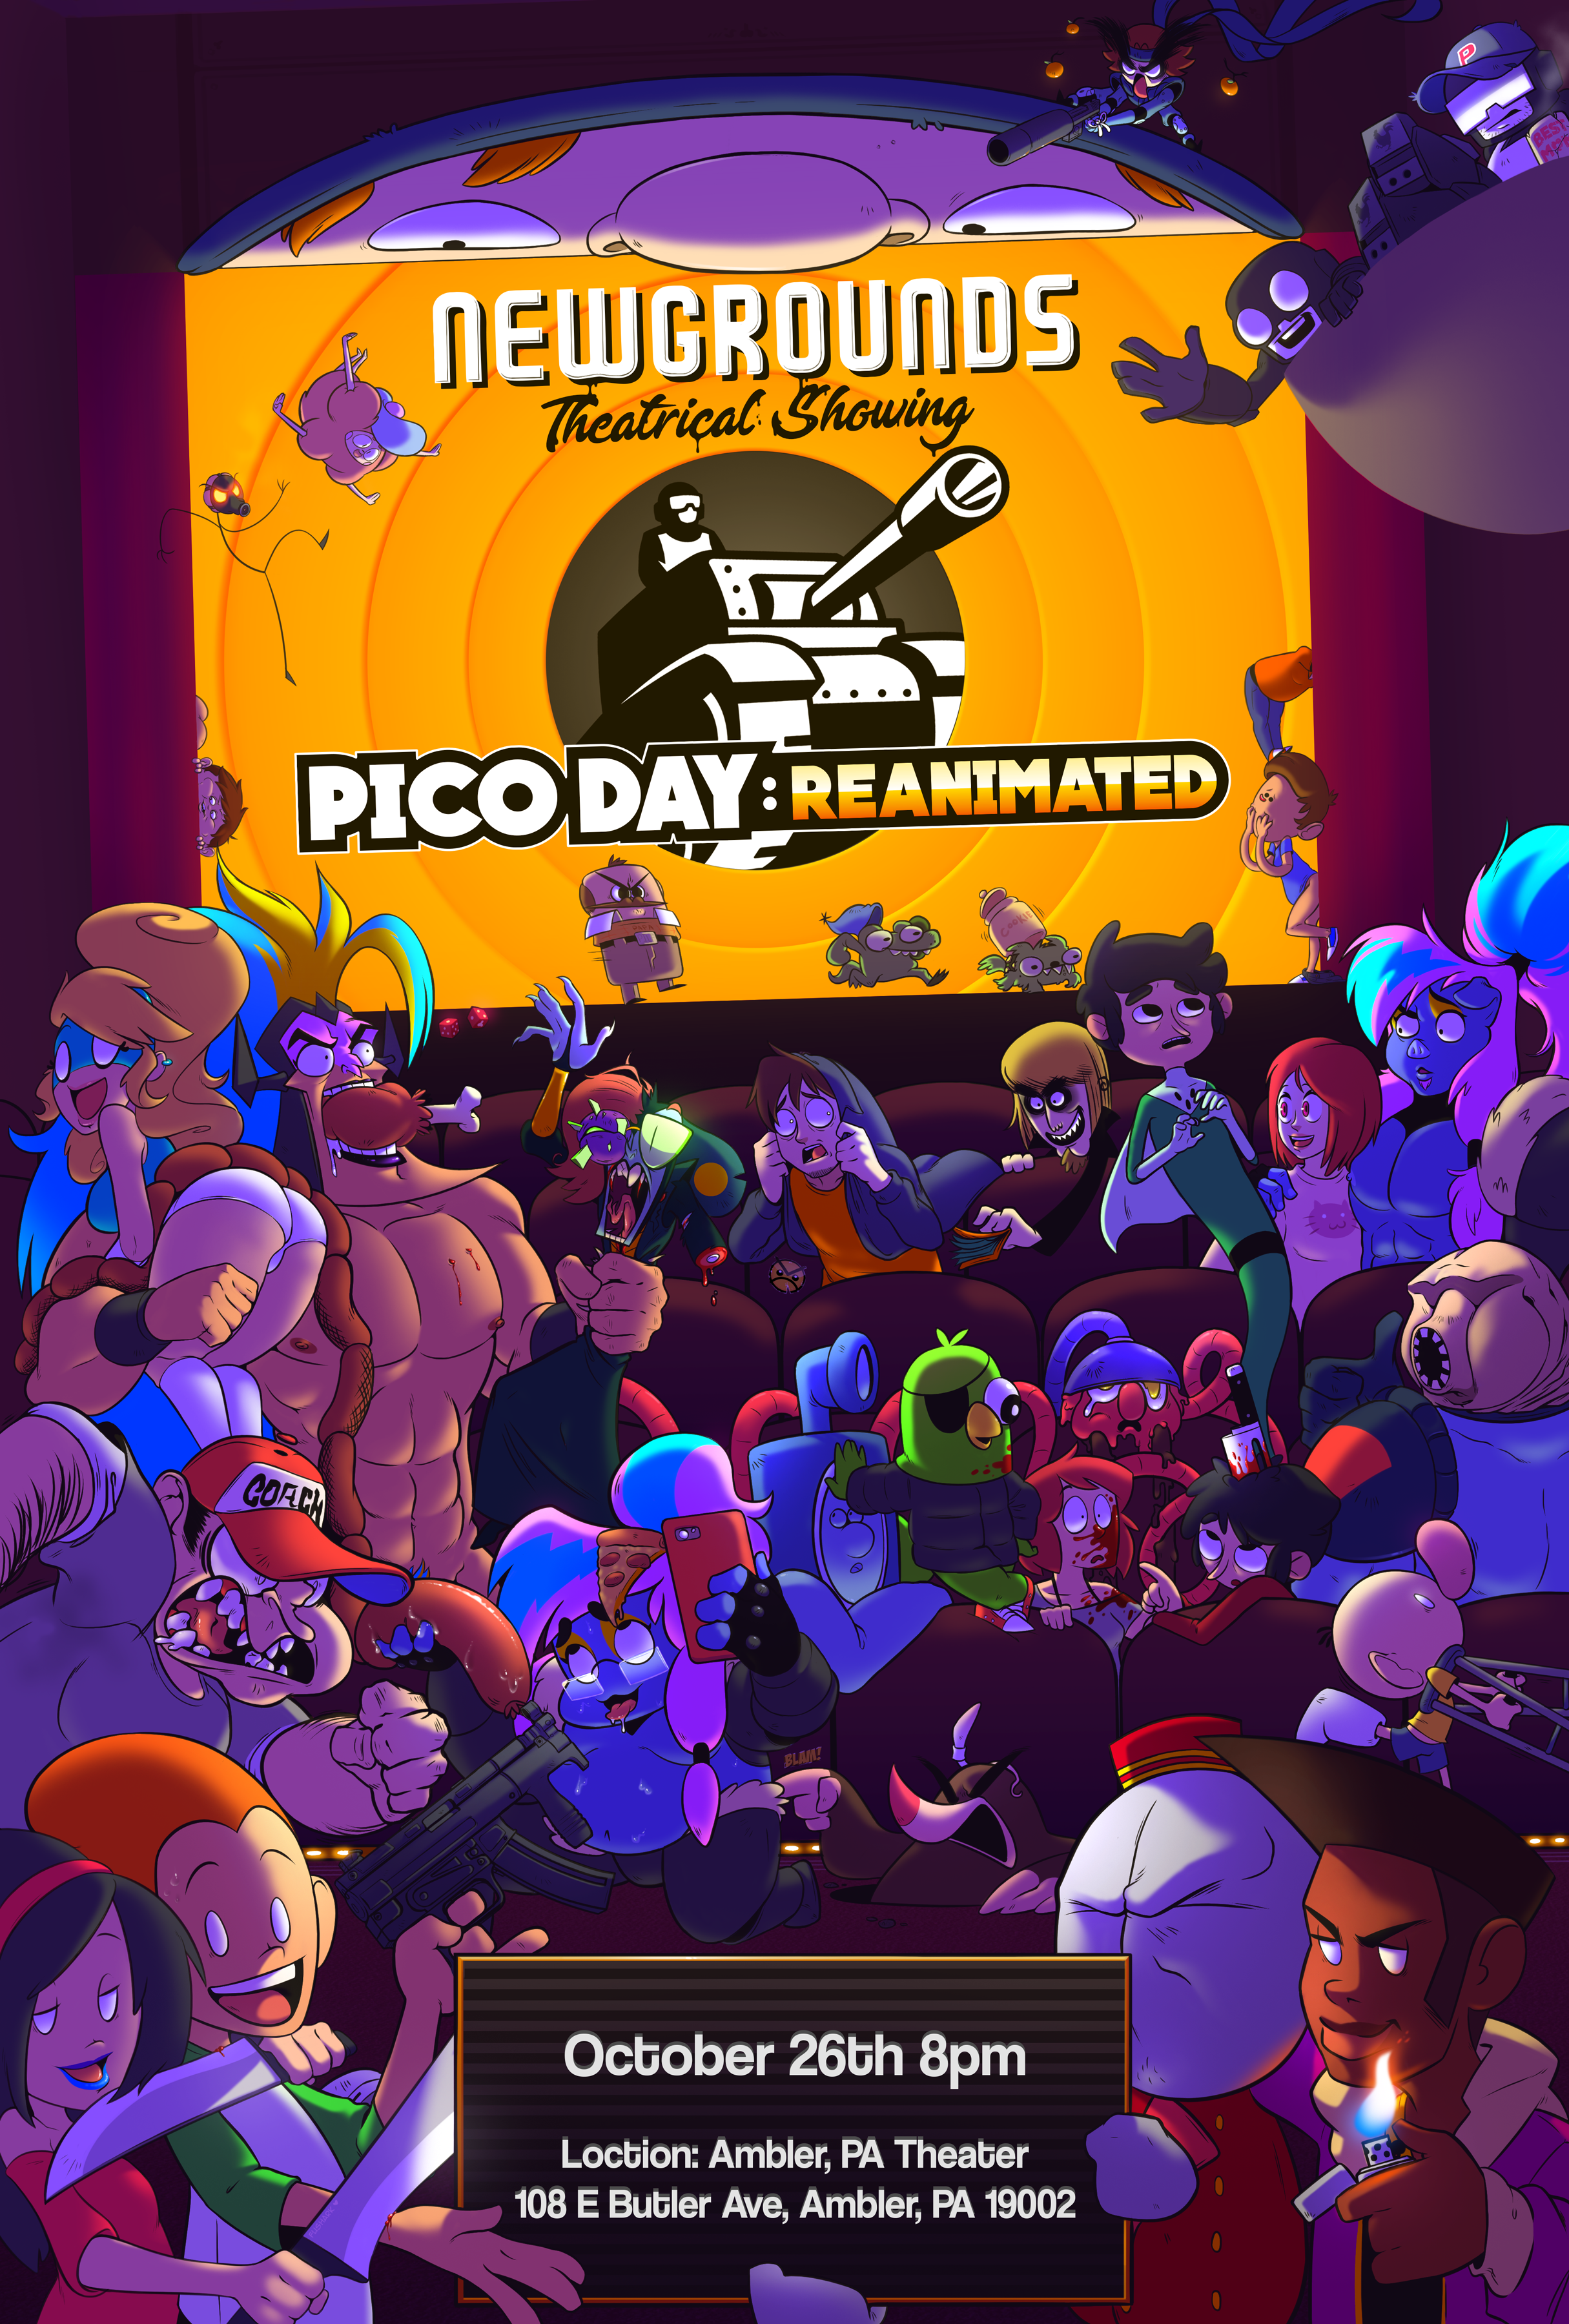 Pico Day: Reanimated